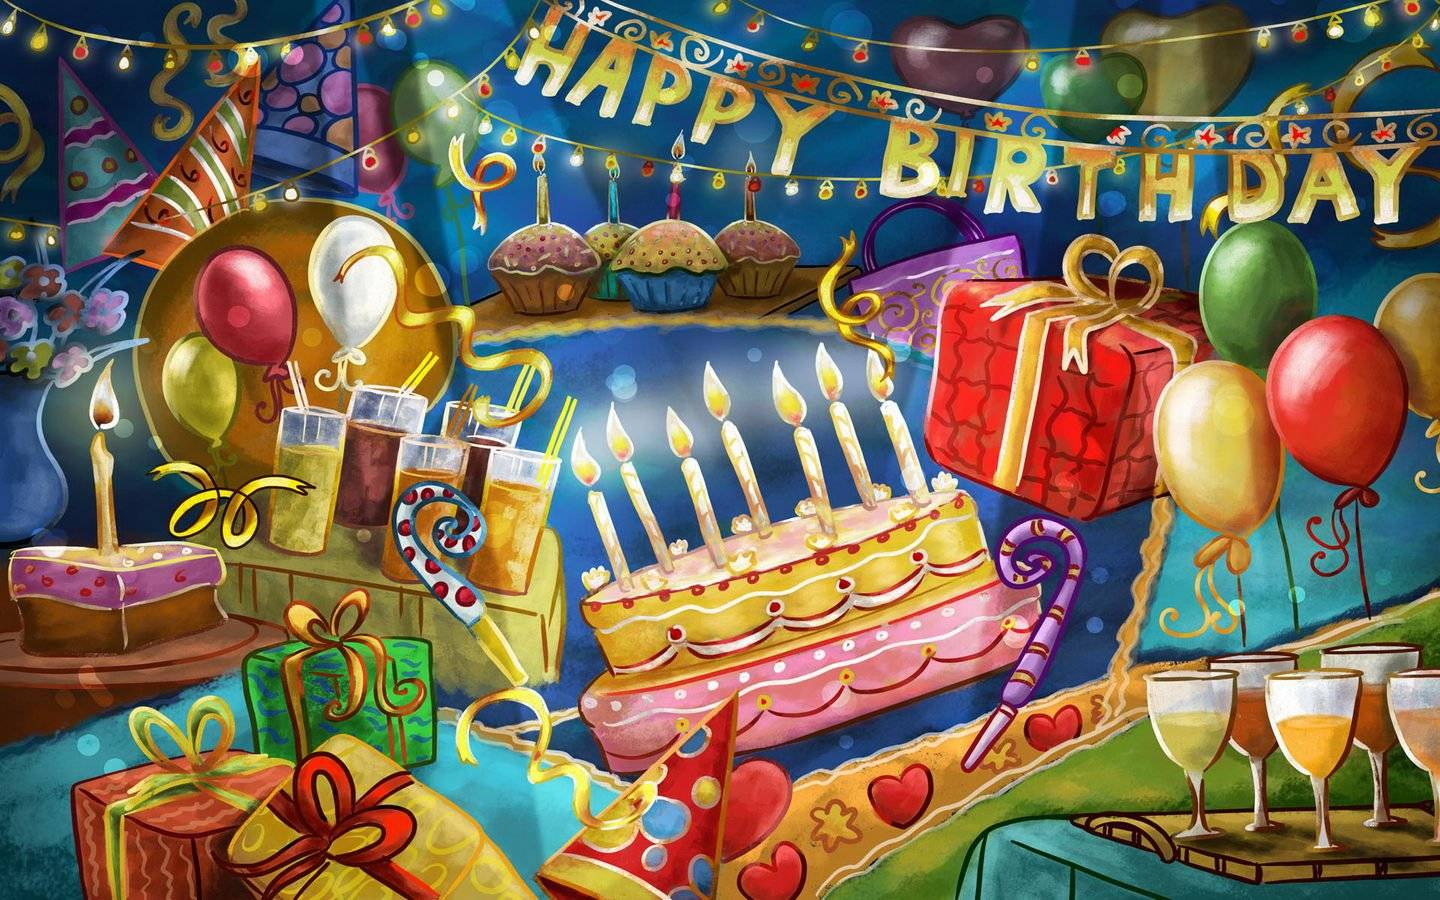 birthday celebration wallpaper ; birthday-party-screensaver-background-holidays-wallpapers_for_desktop